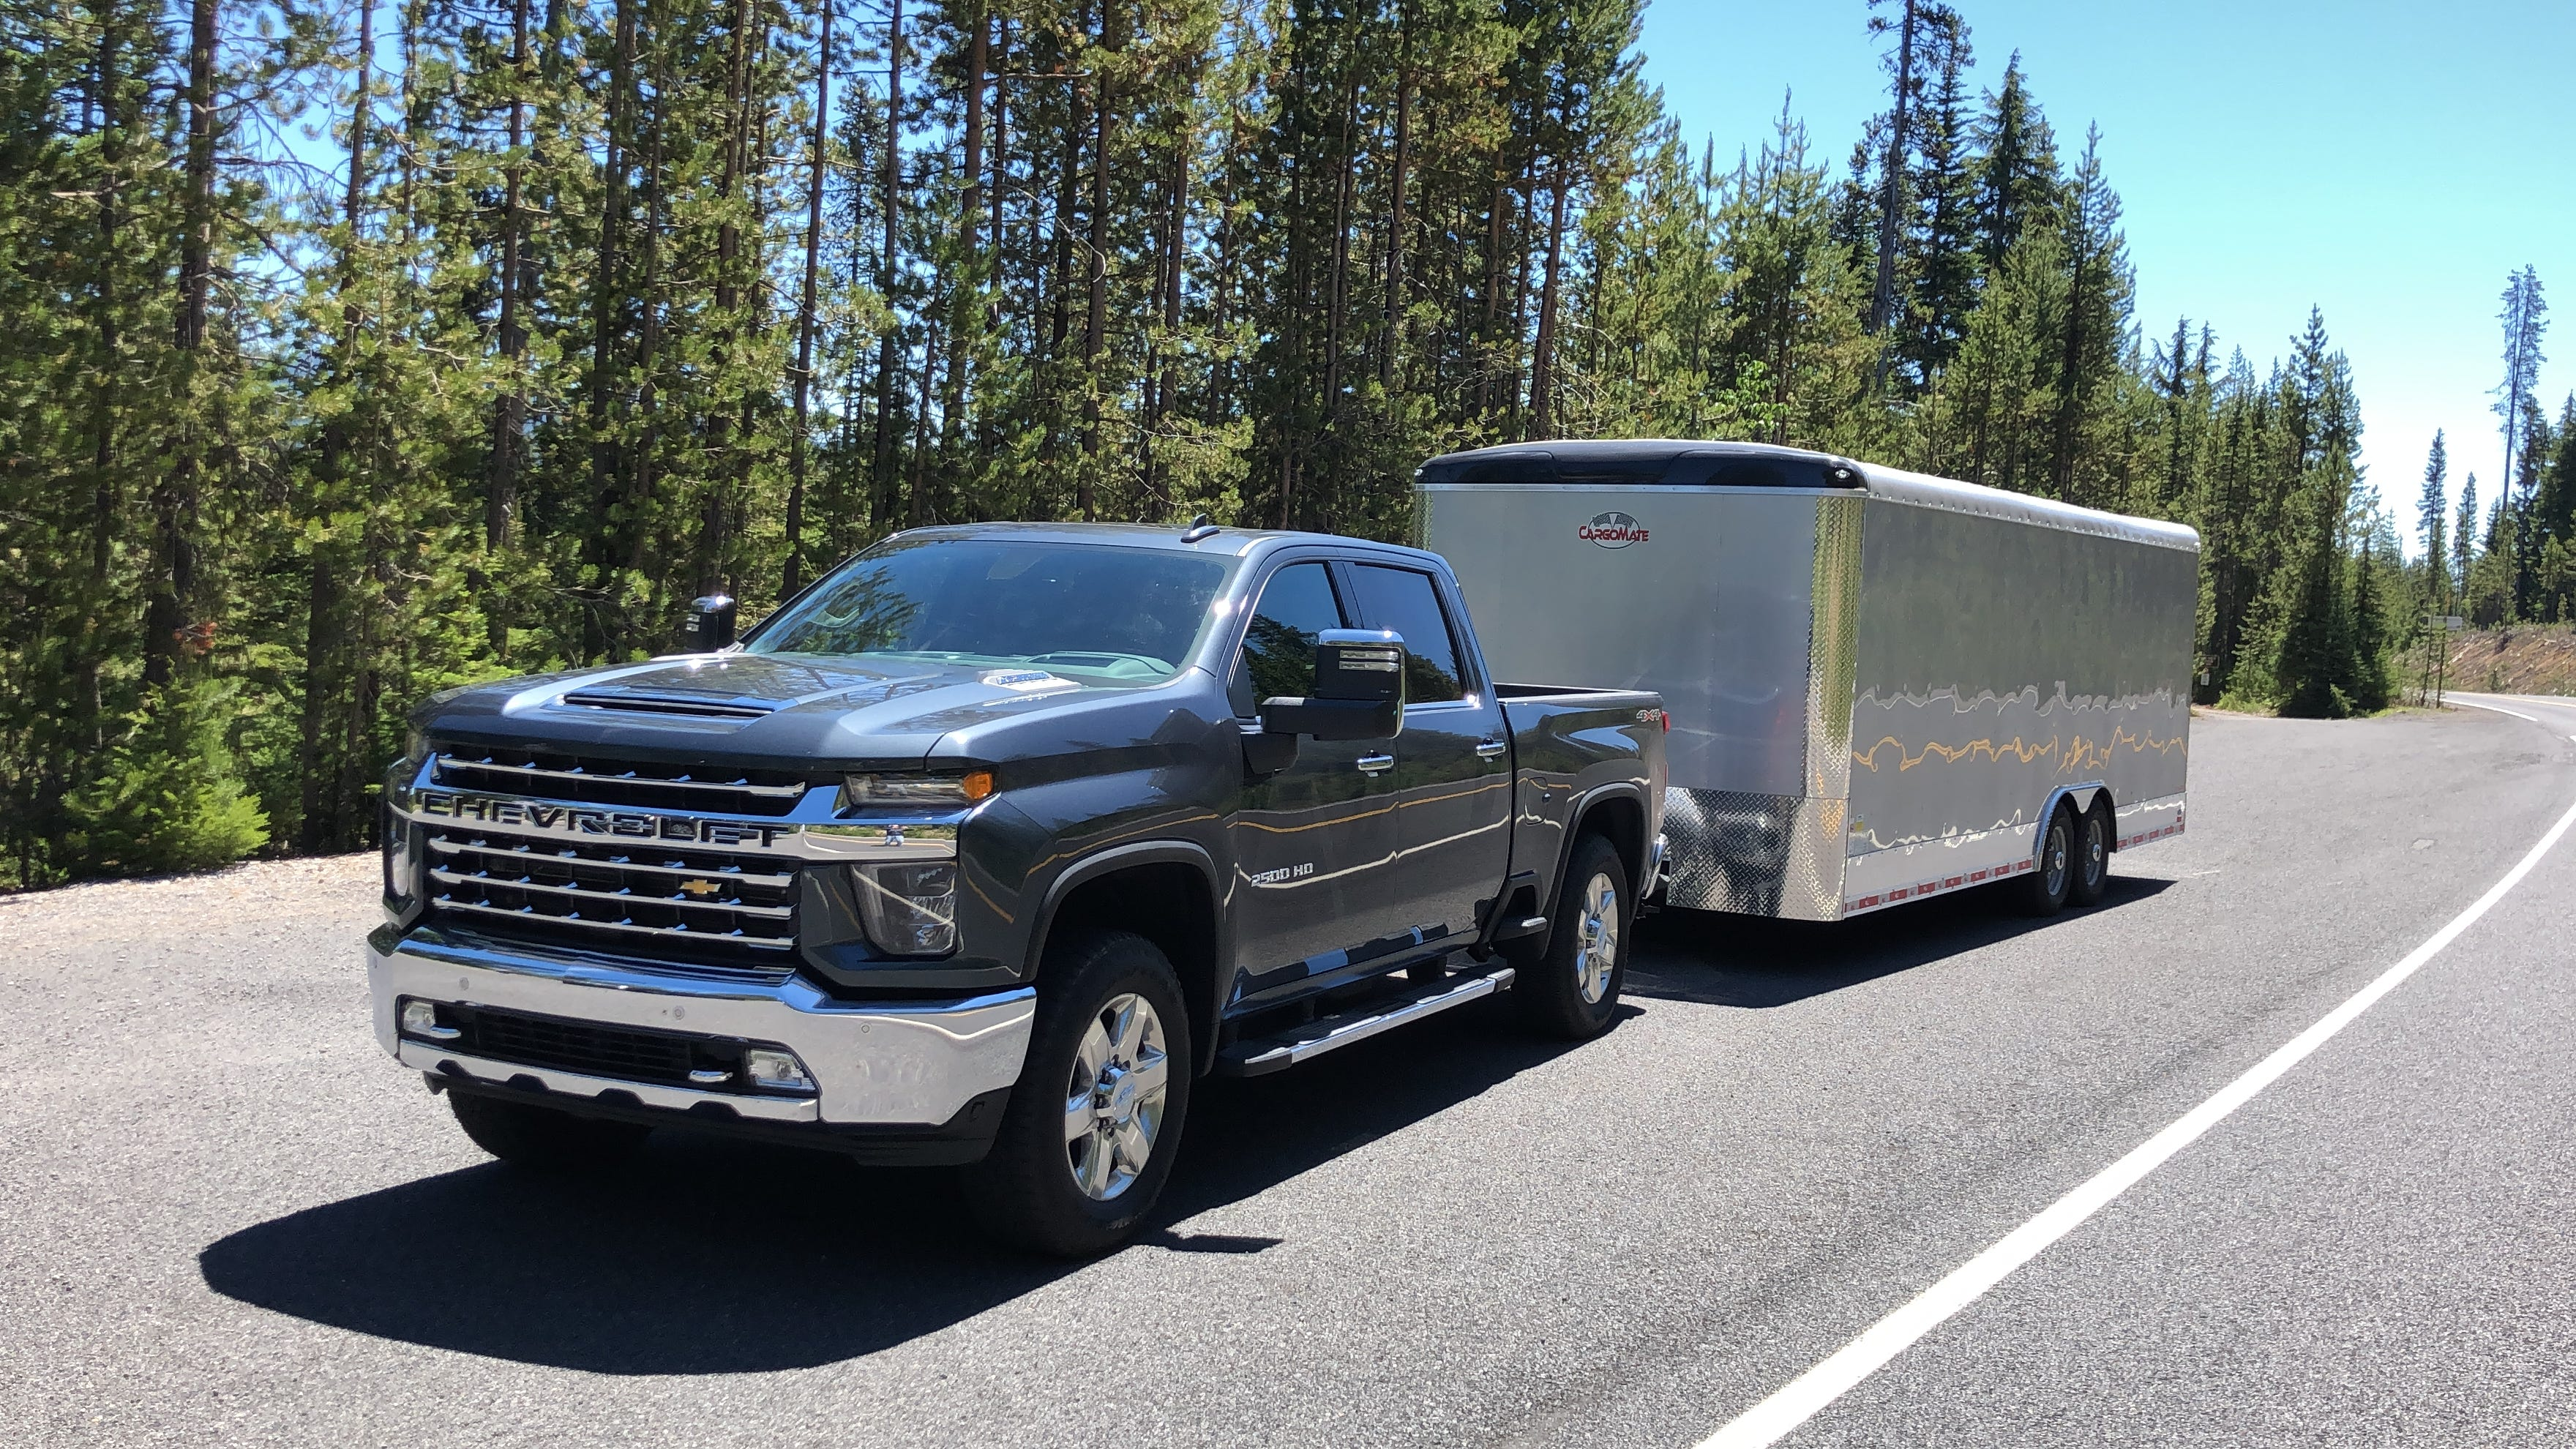 2020 Chevy Silverado 2500 3500 Hd Pickups Have Best Towing Capacity